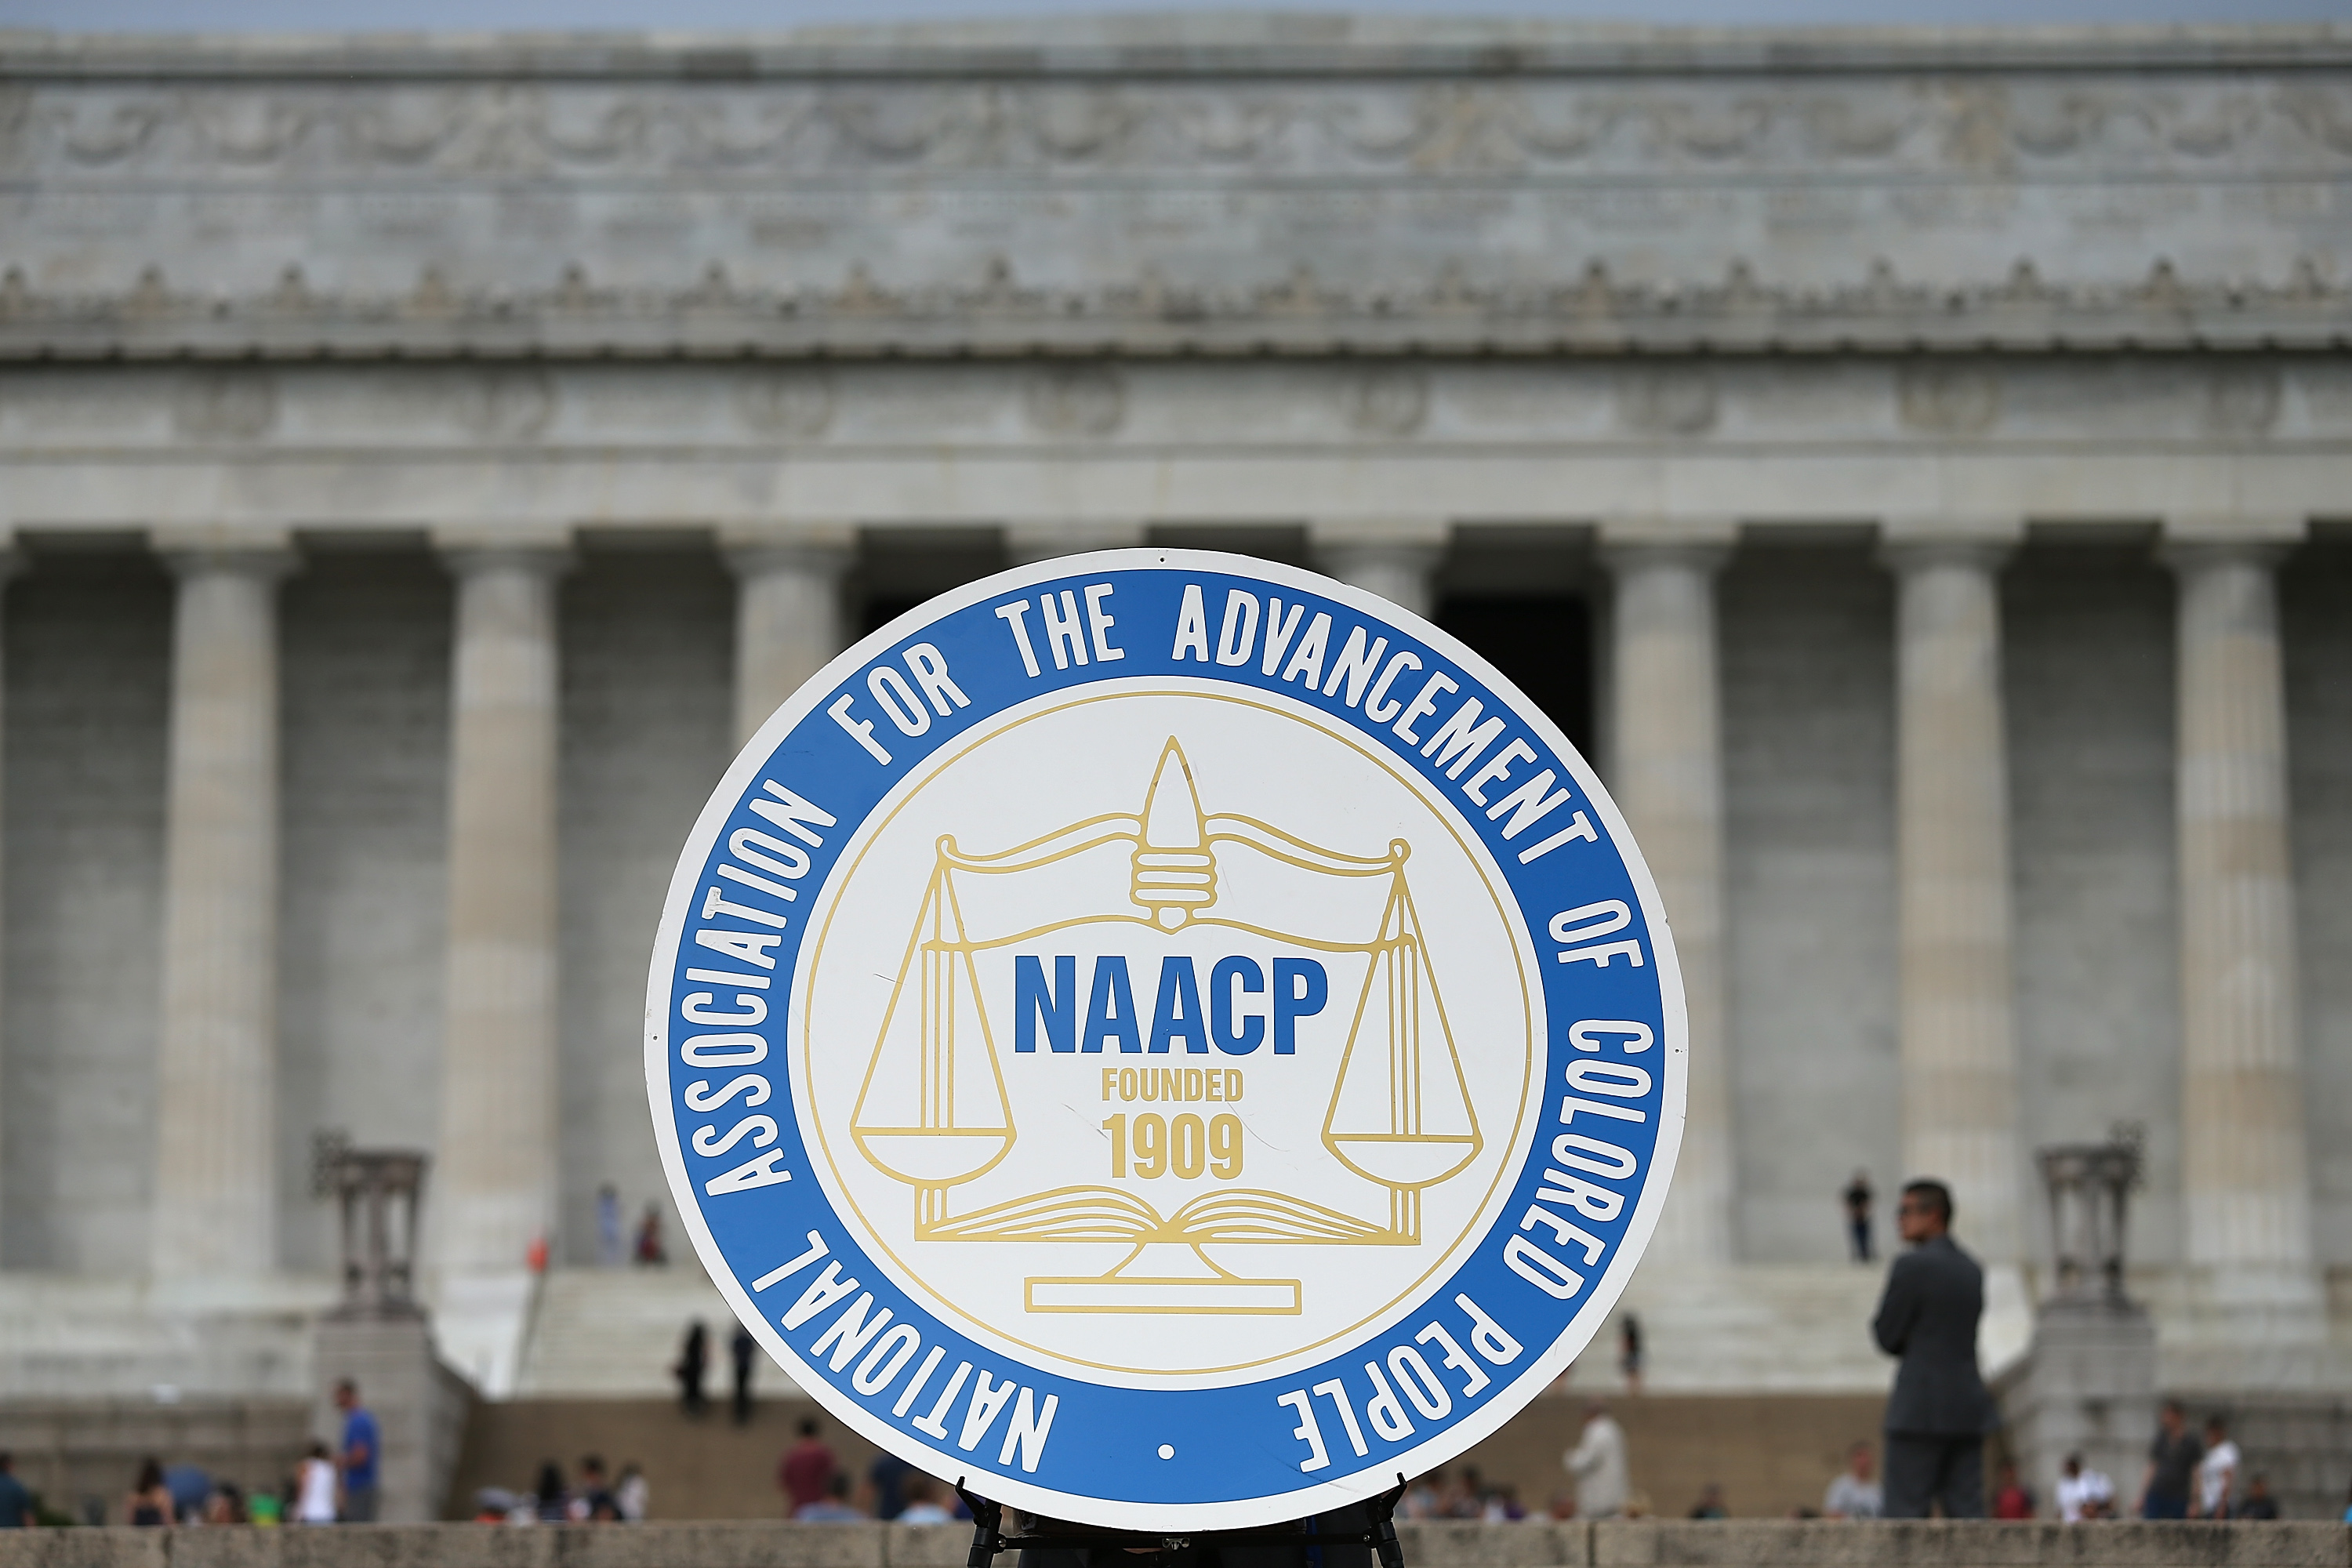 NAACP Working to Move Headquarters to Nation's Capital